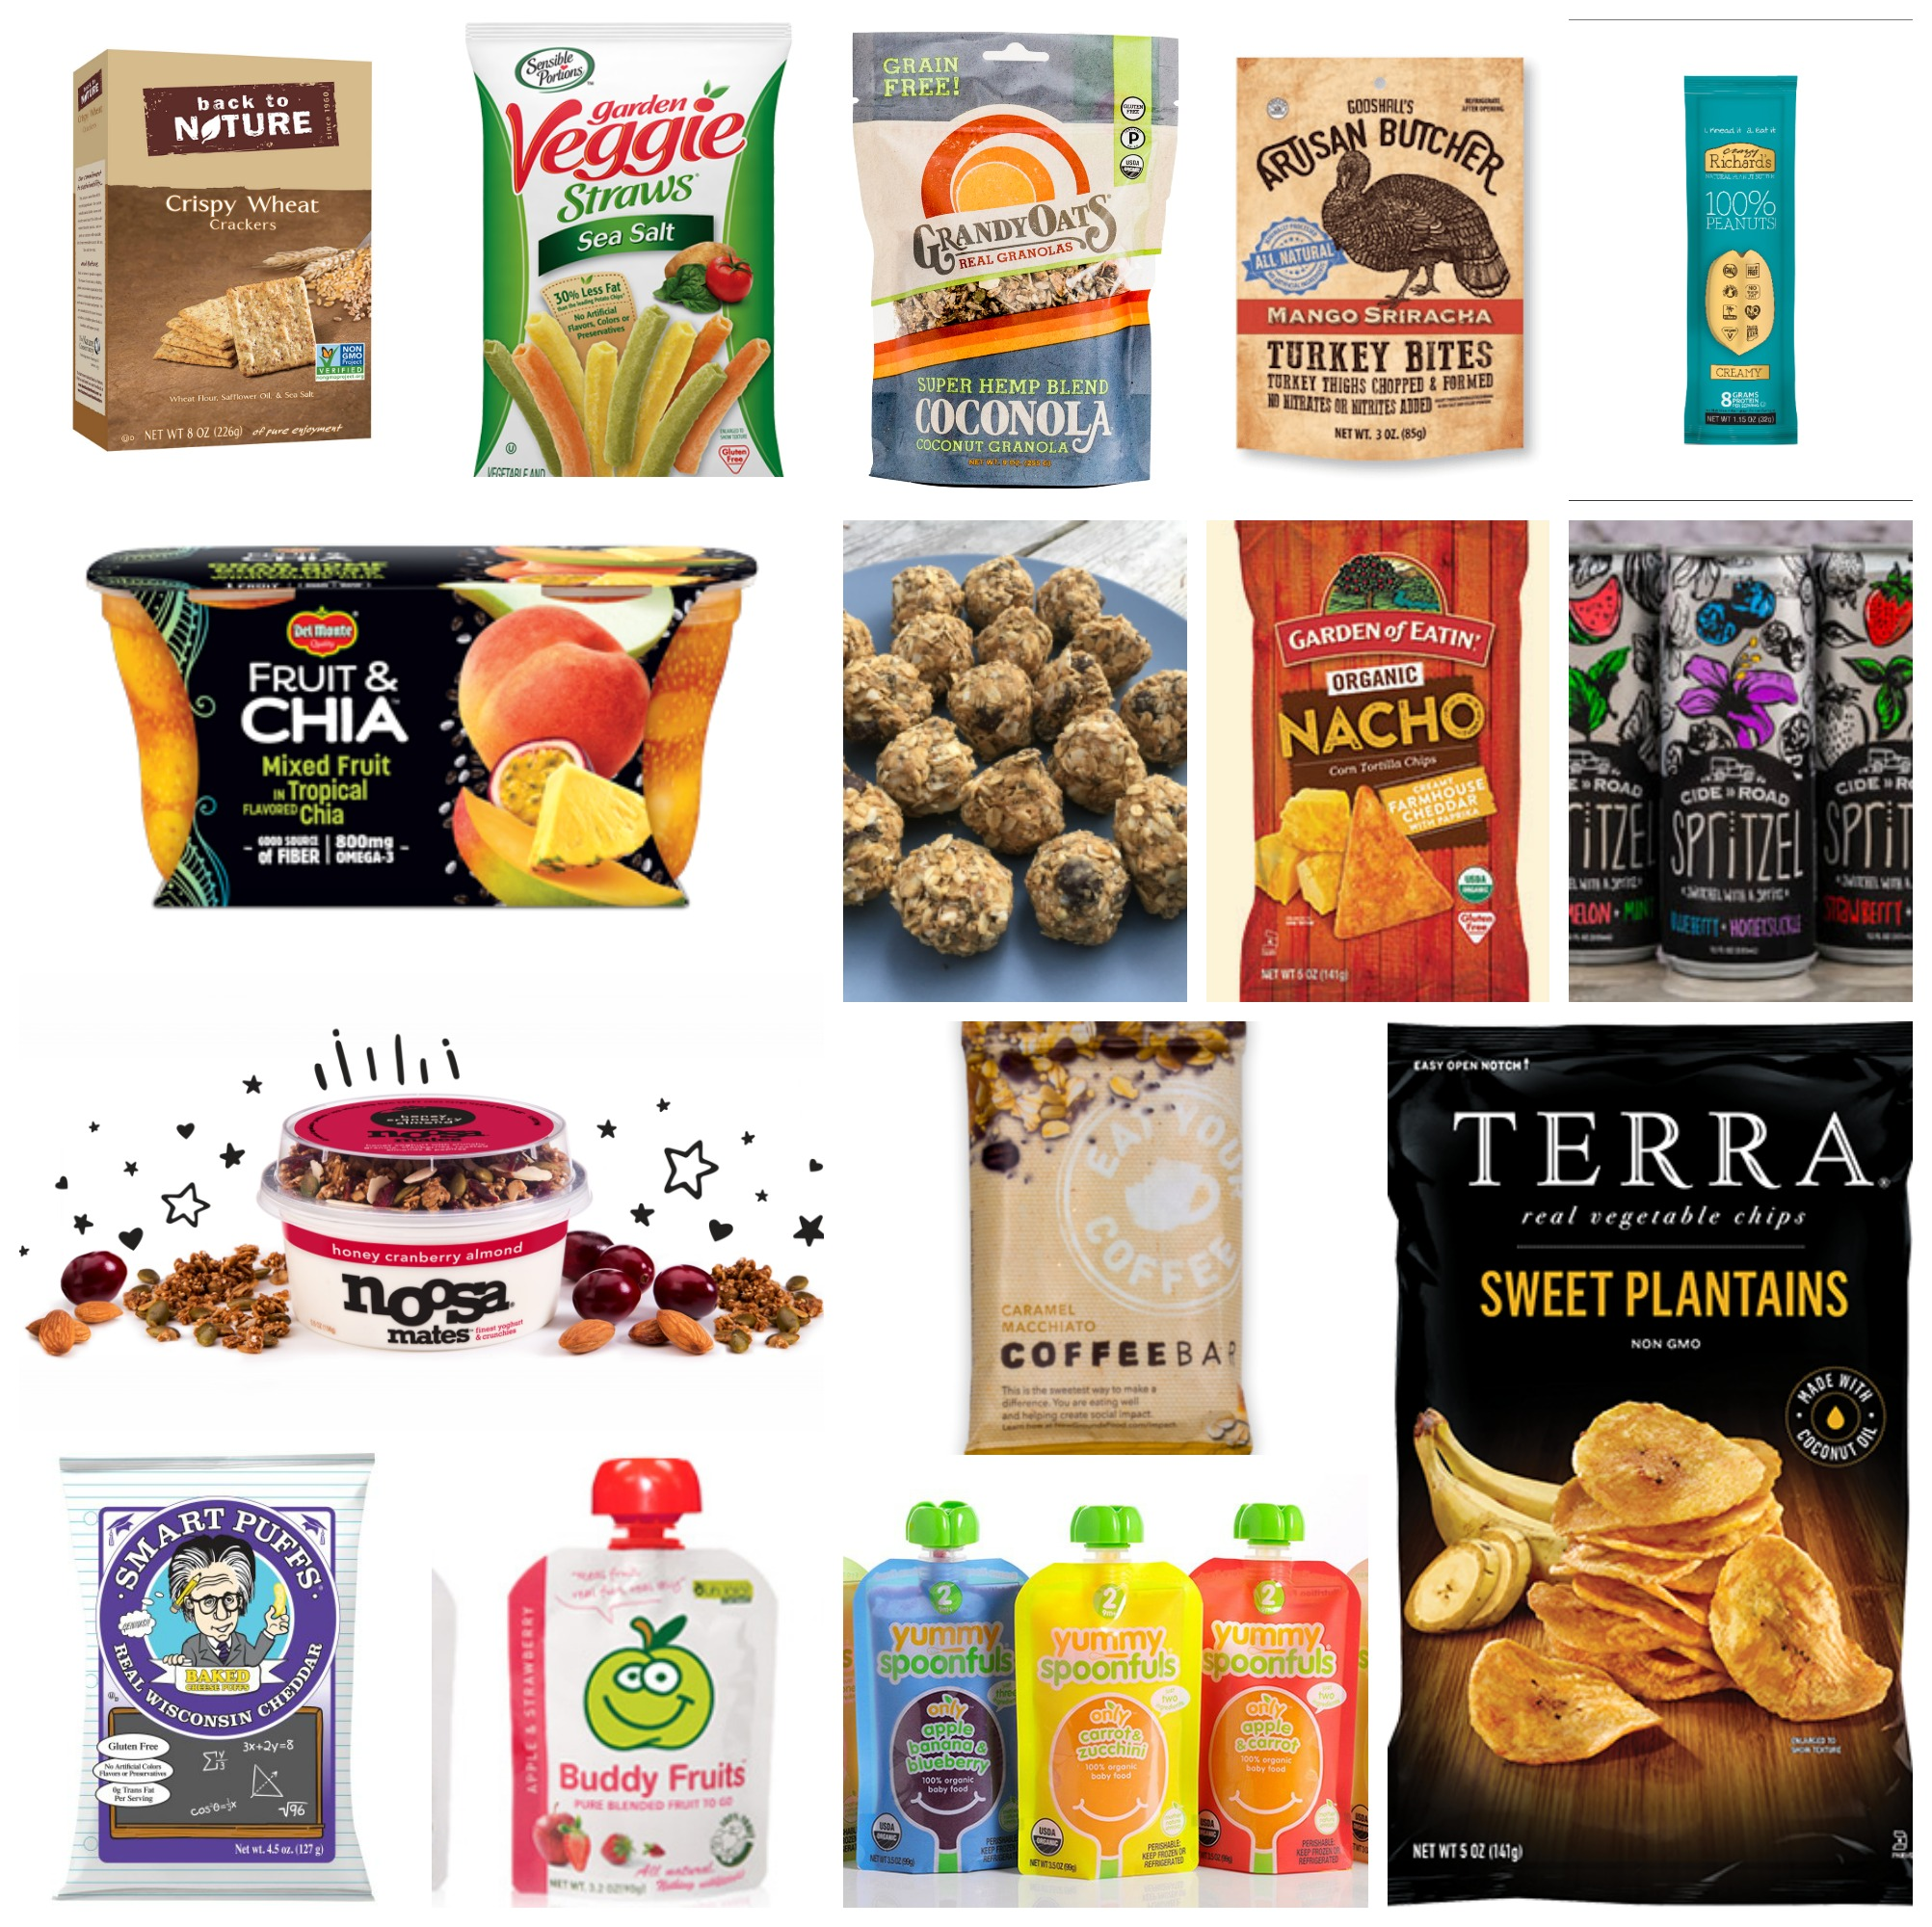 Road Trip Snacks Packaged Healthy Snacks For Car Rides